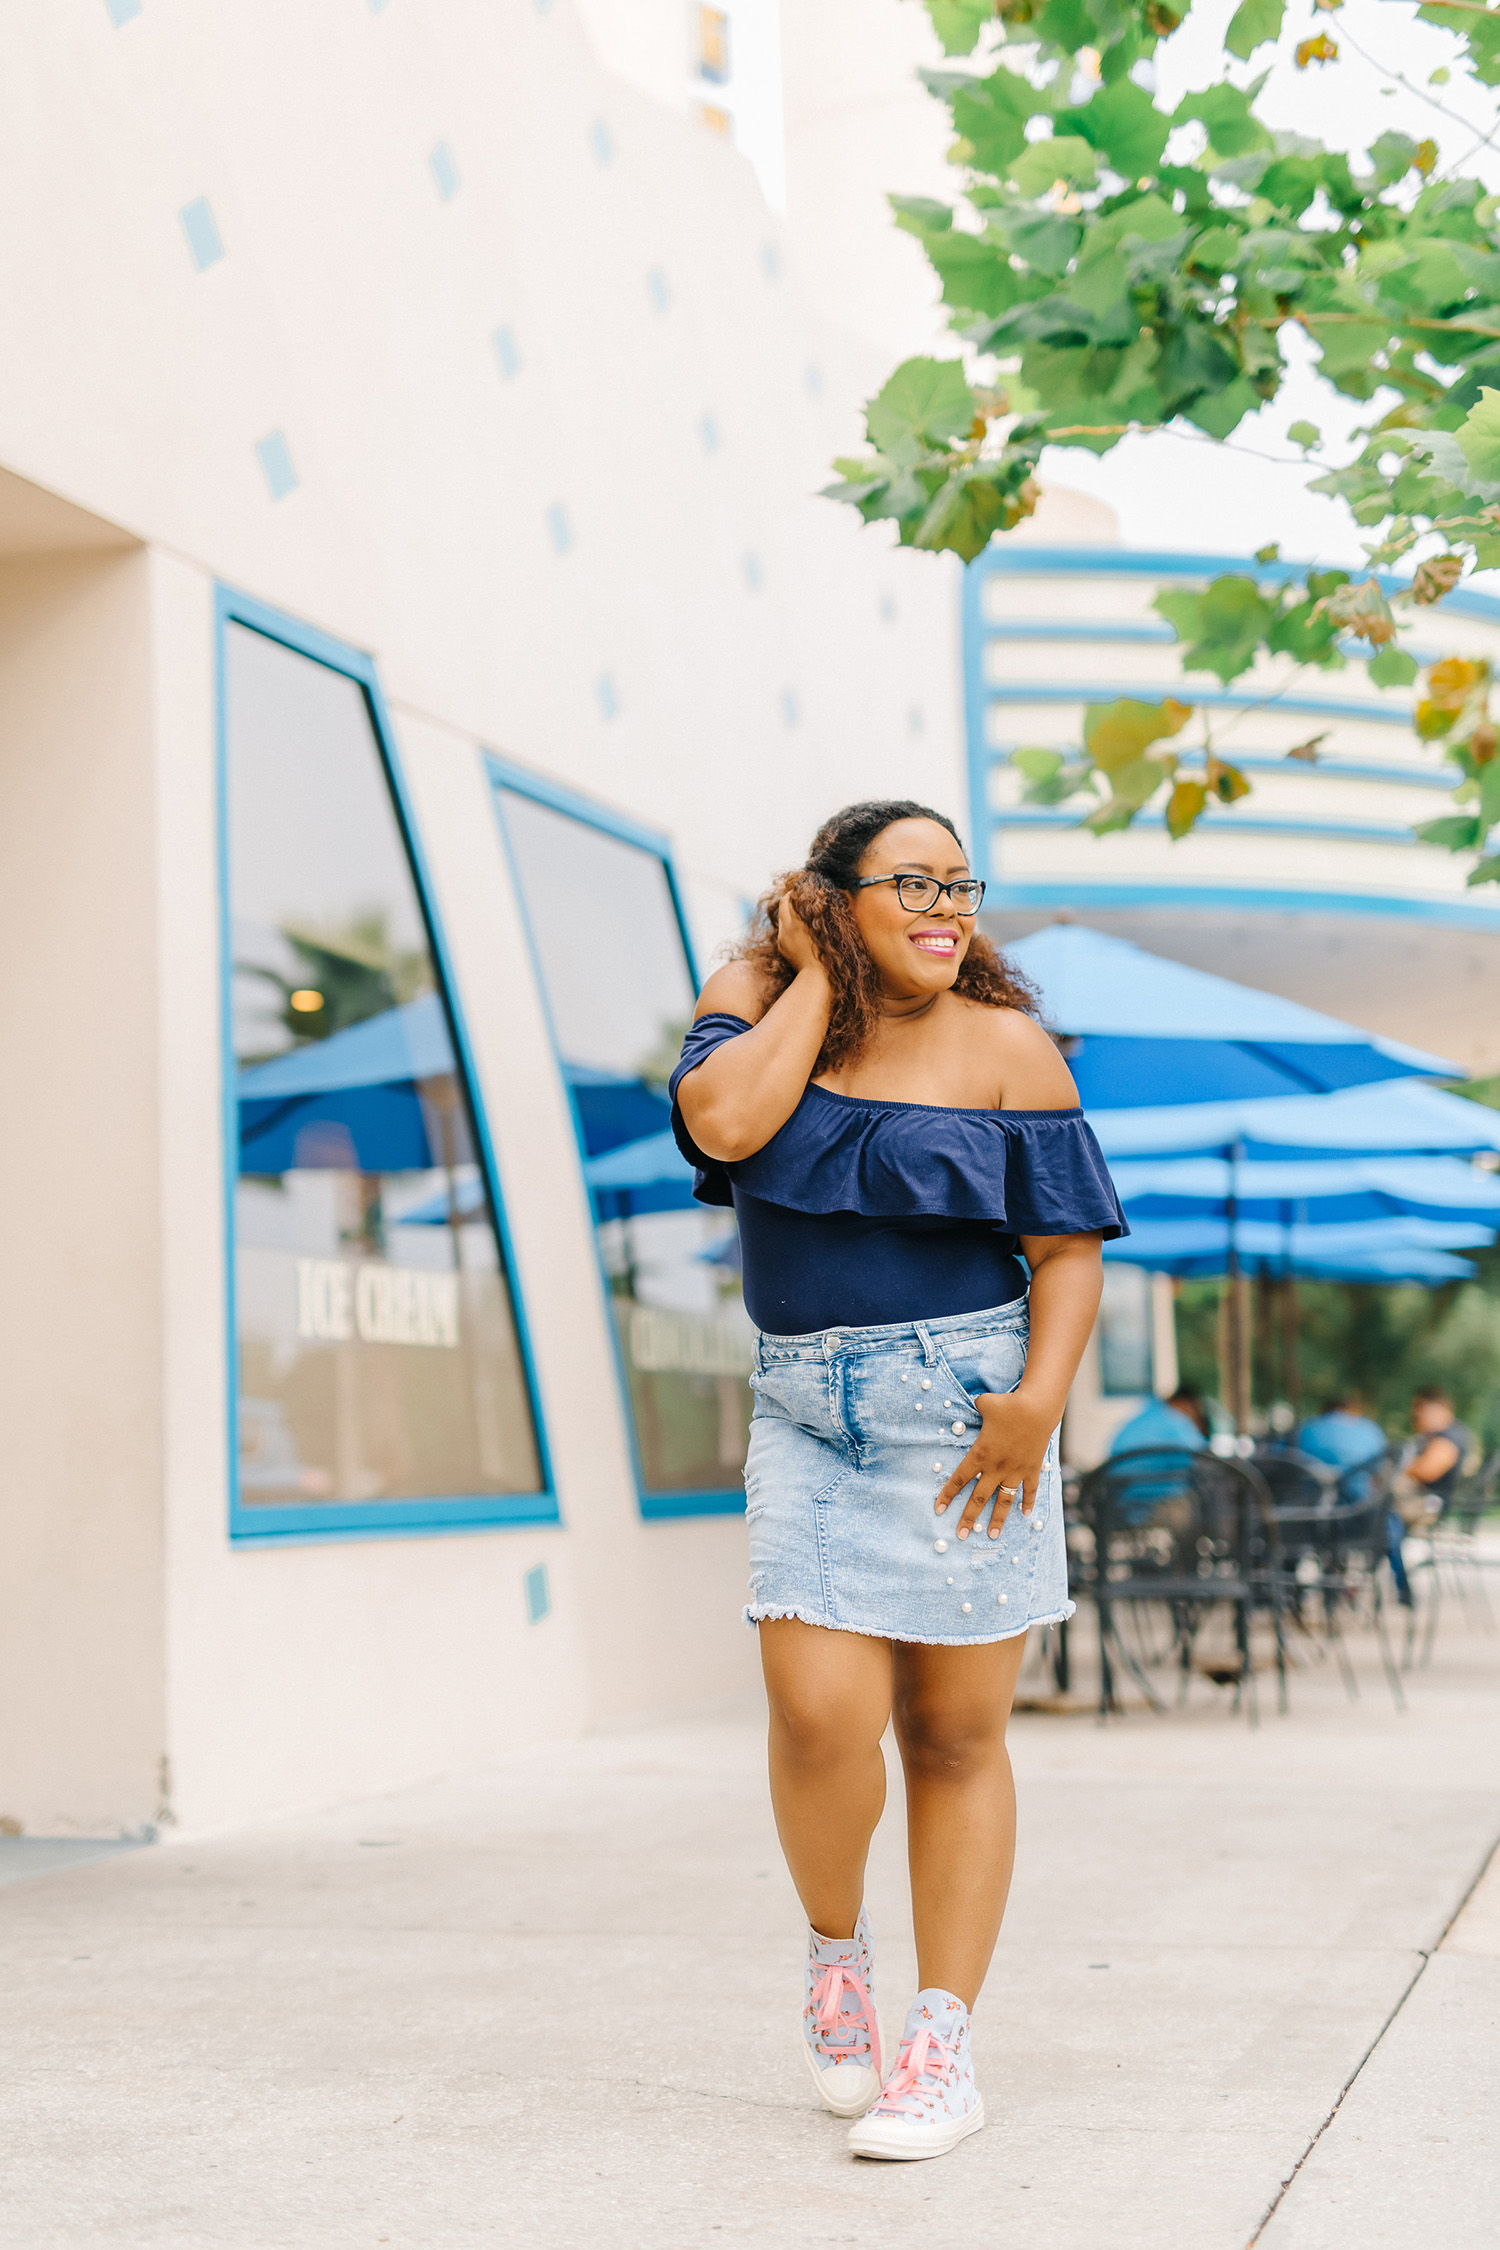 10 Tips For How to Live Your Best Life - Bianca Dottin - Orlando Blogger